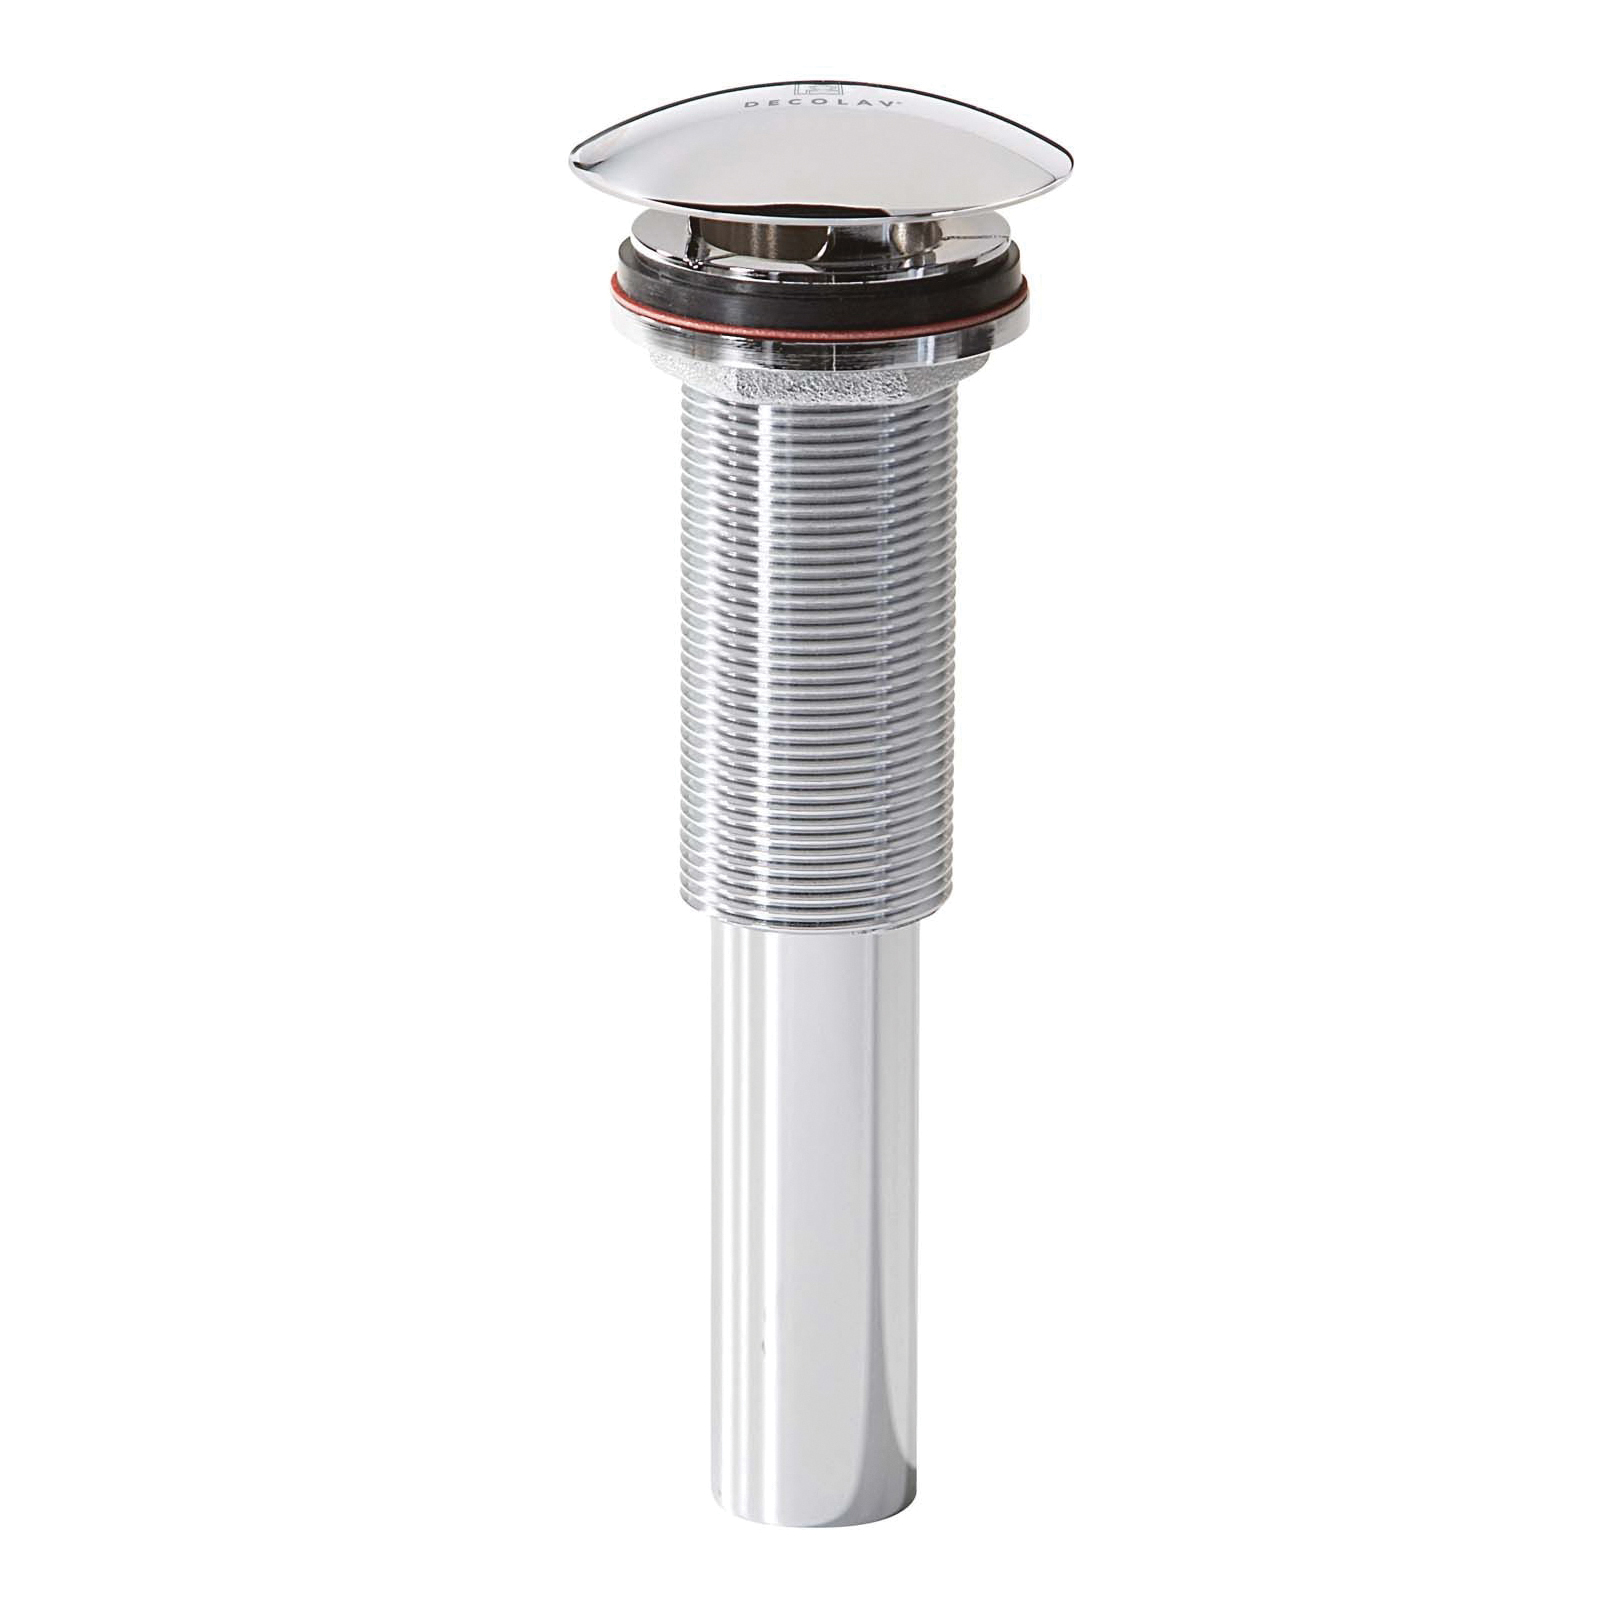 DECOLAV® 9290-CP Non-Closing Grid Decorative Umbrella Top Drain, Polished Chrome, Overflow Yes/No: No, Solid Brass Drain, Includes Lift Rod: No